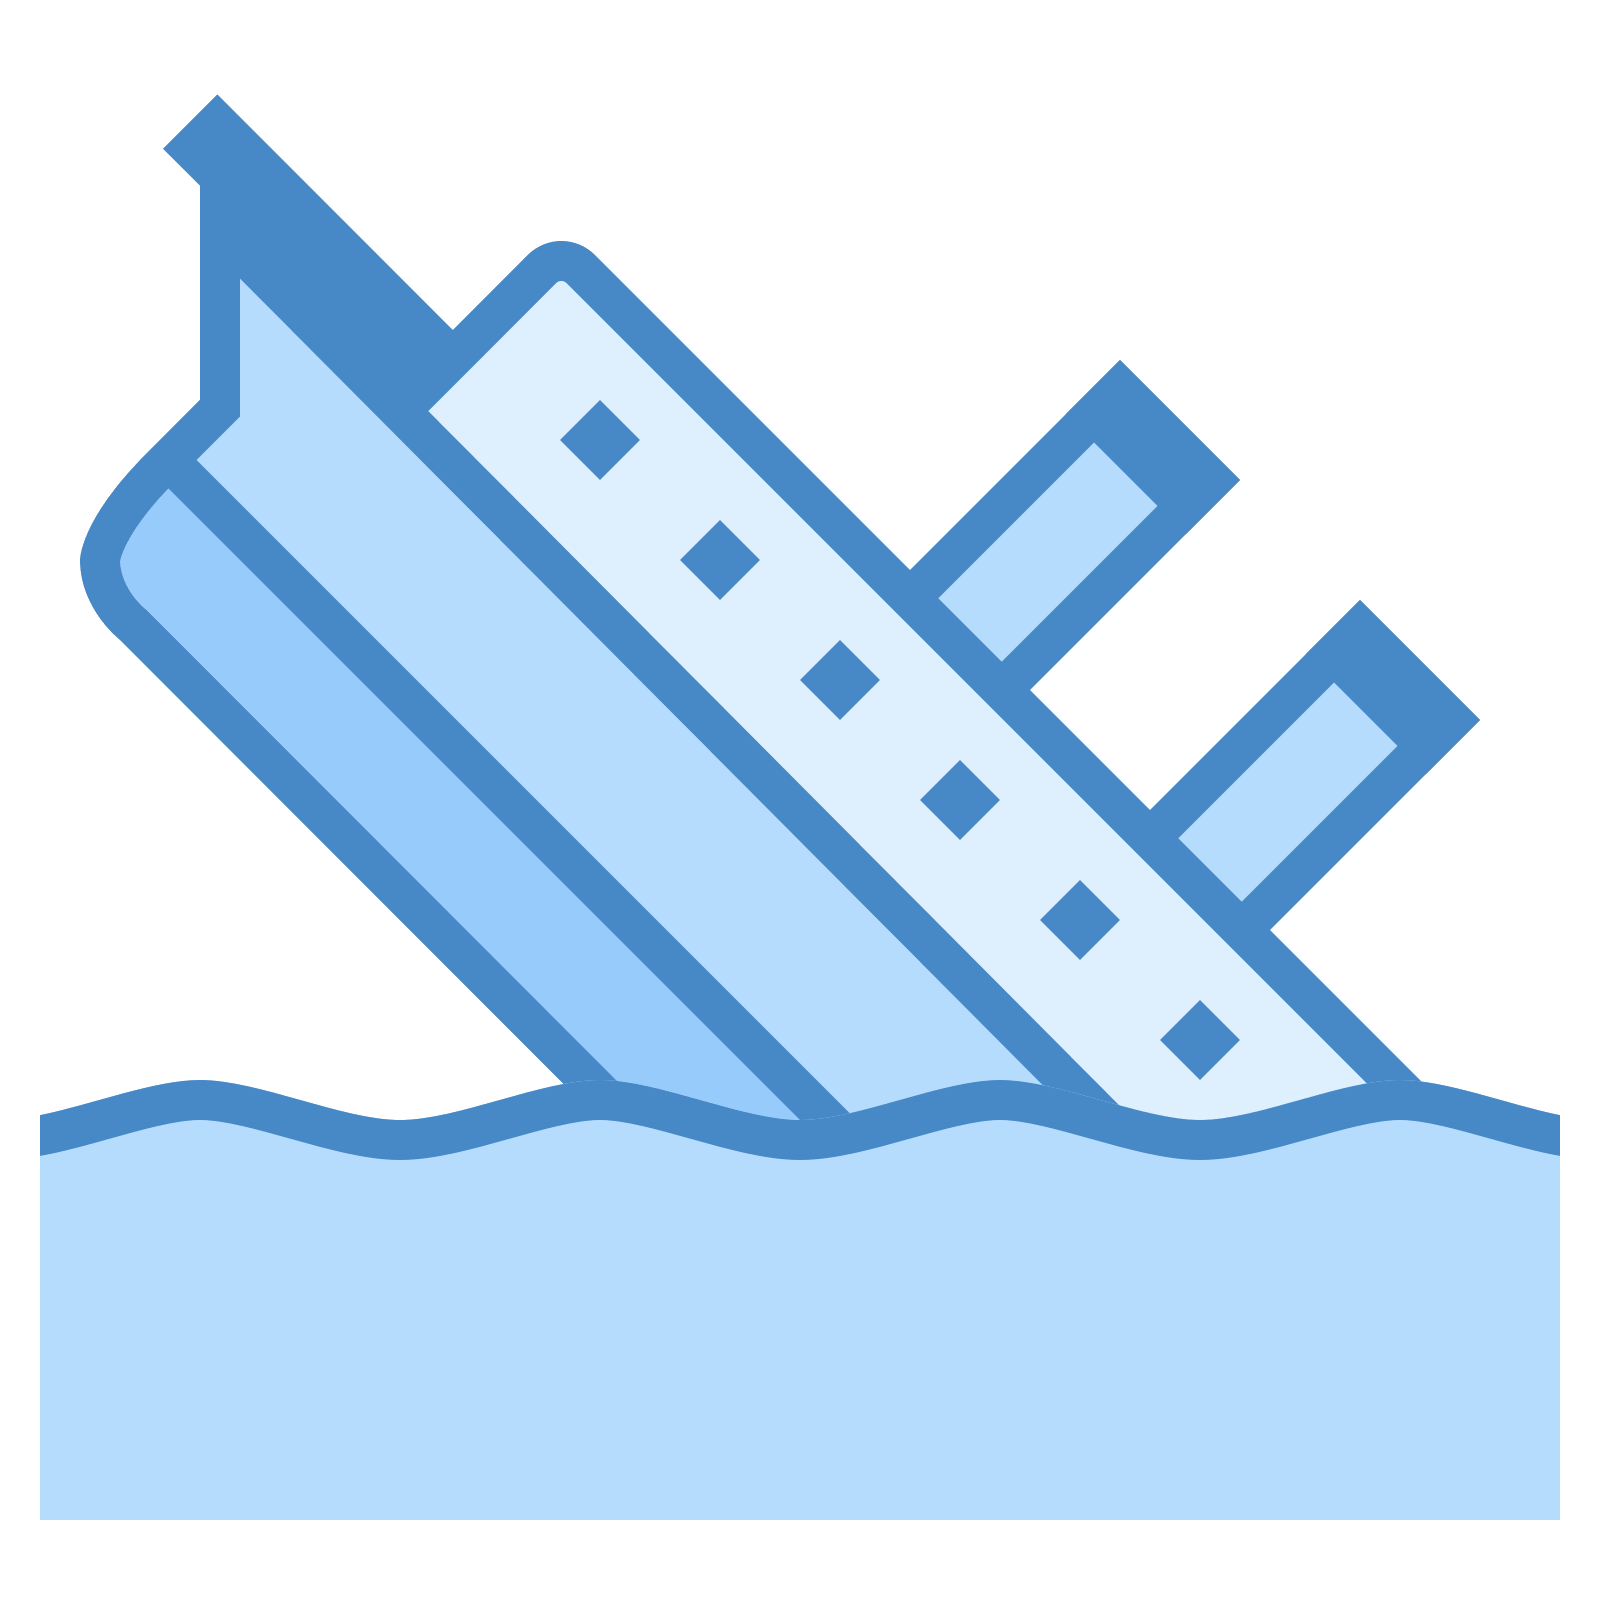 svg black and white download Svg free on dumielauxepices. Titanic clipart titanic ship